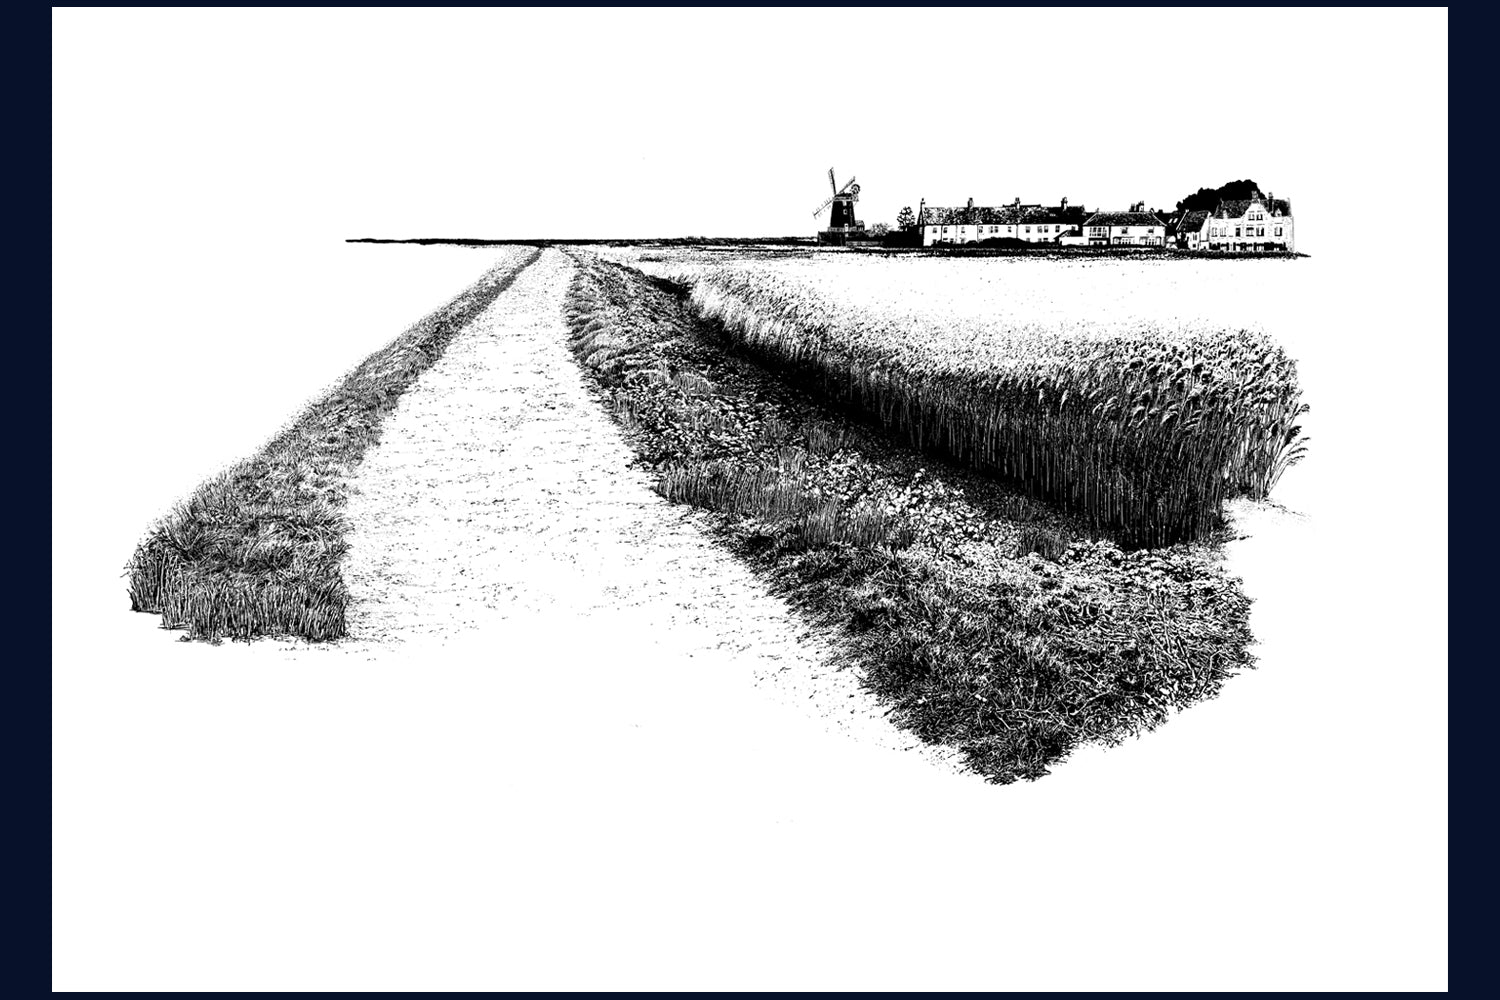 Framed Land Song Limited Edition Fine Art Print: Cley, Norfolk no. 21 of 50